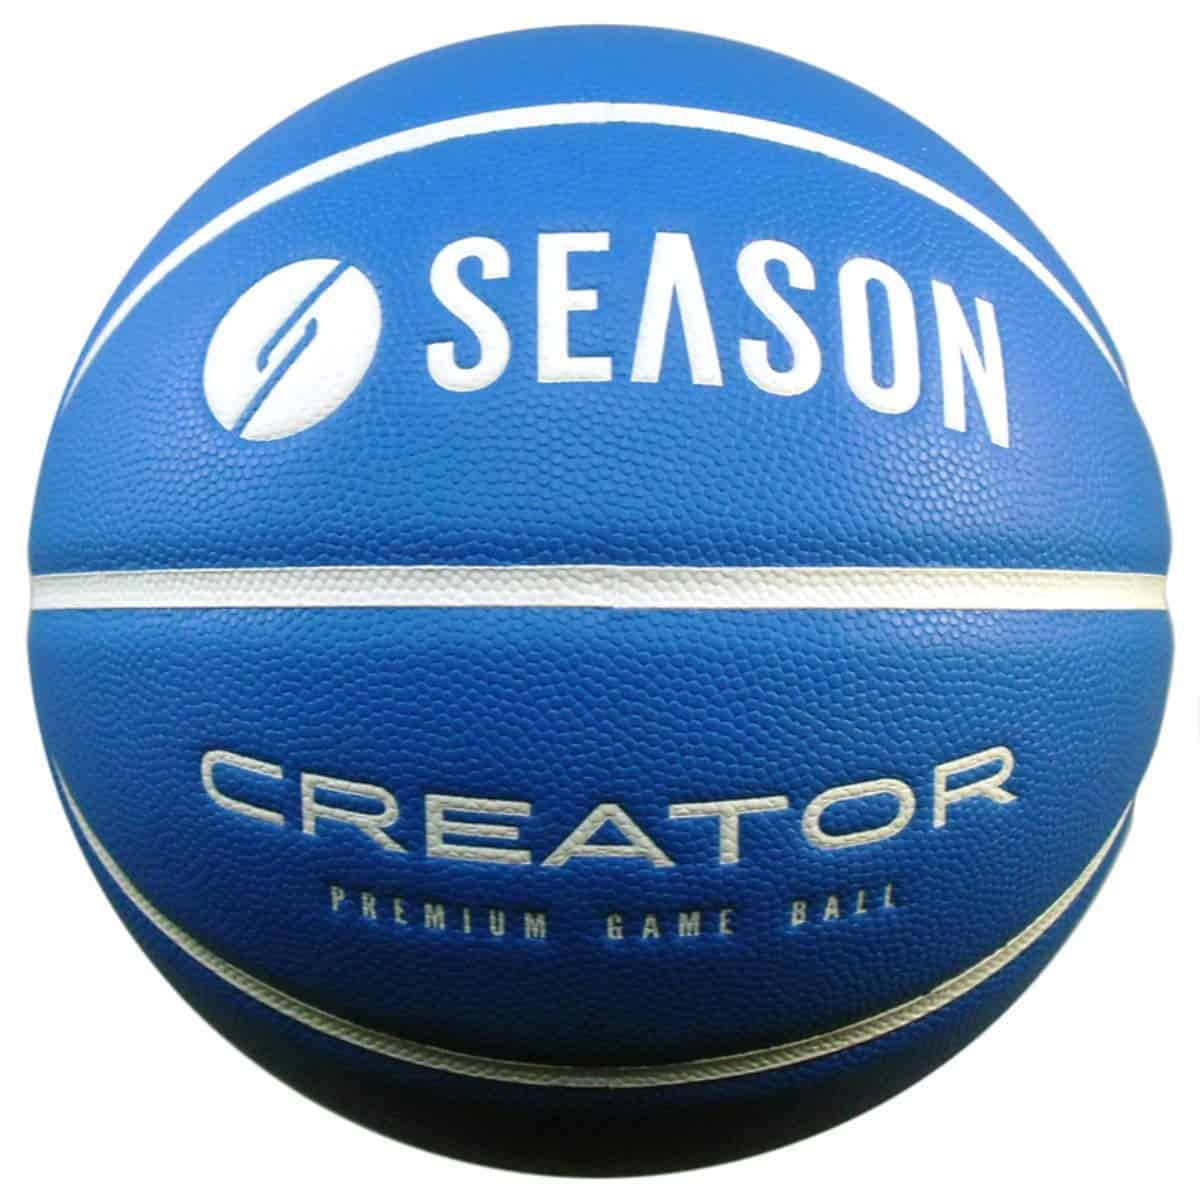 Season Creator Premium Indoor Game Basketball